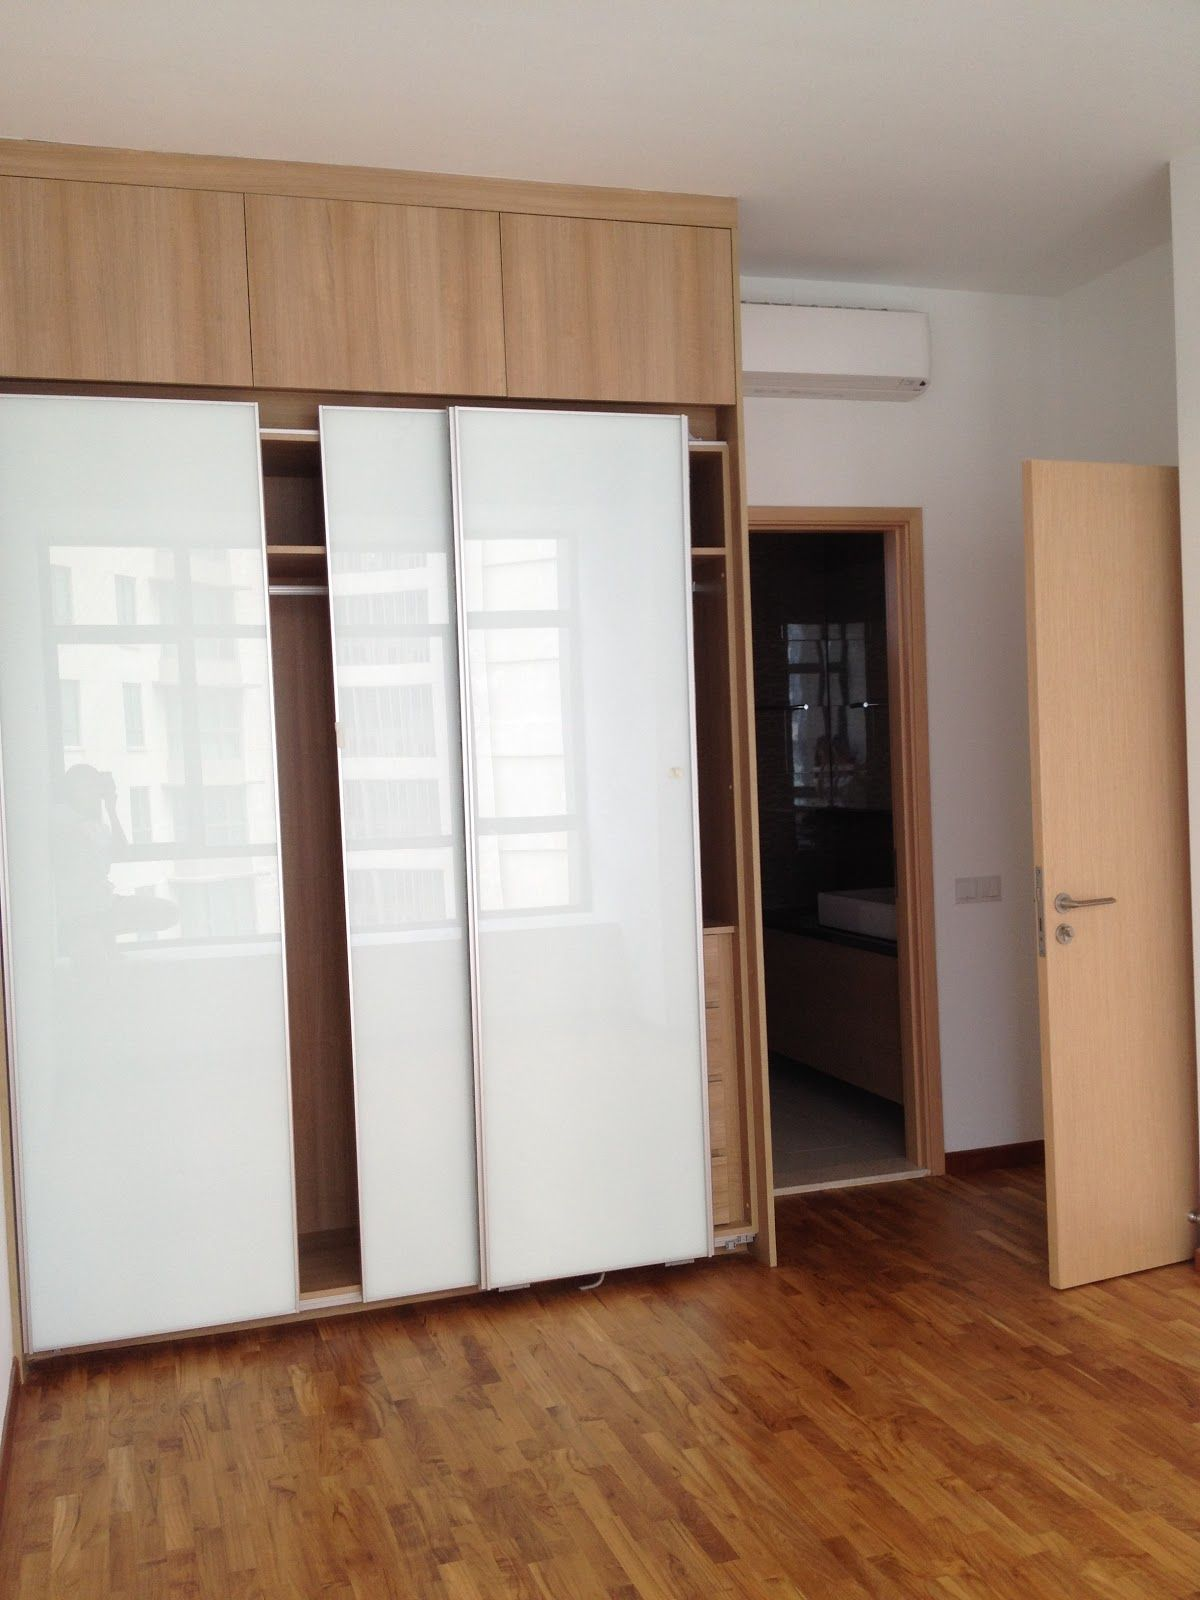 Simple Bedroom Built In Cabinet Design Sliding Door Wardrobe Designs Wardrobe Door Designs Bedroom Built In Wardrobe